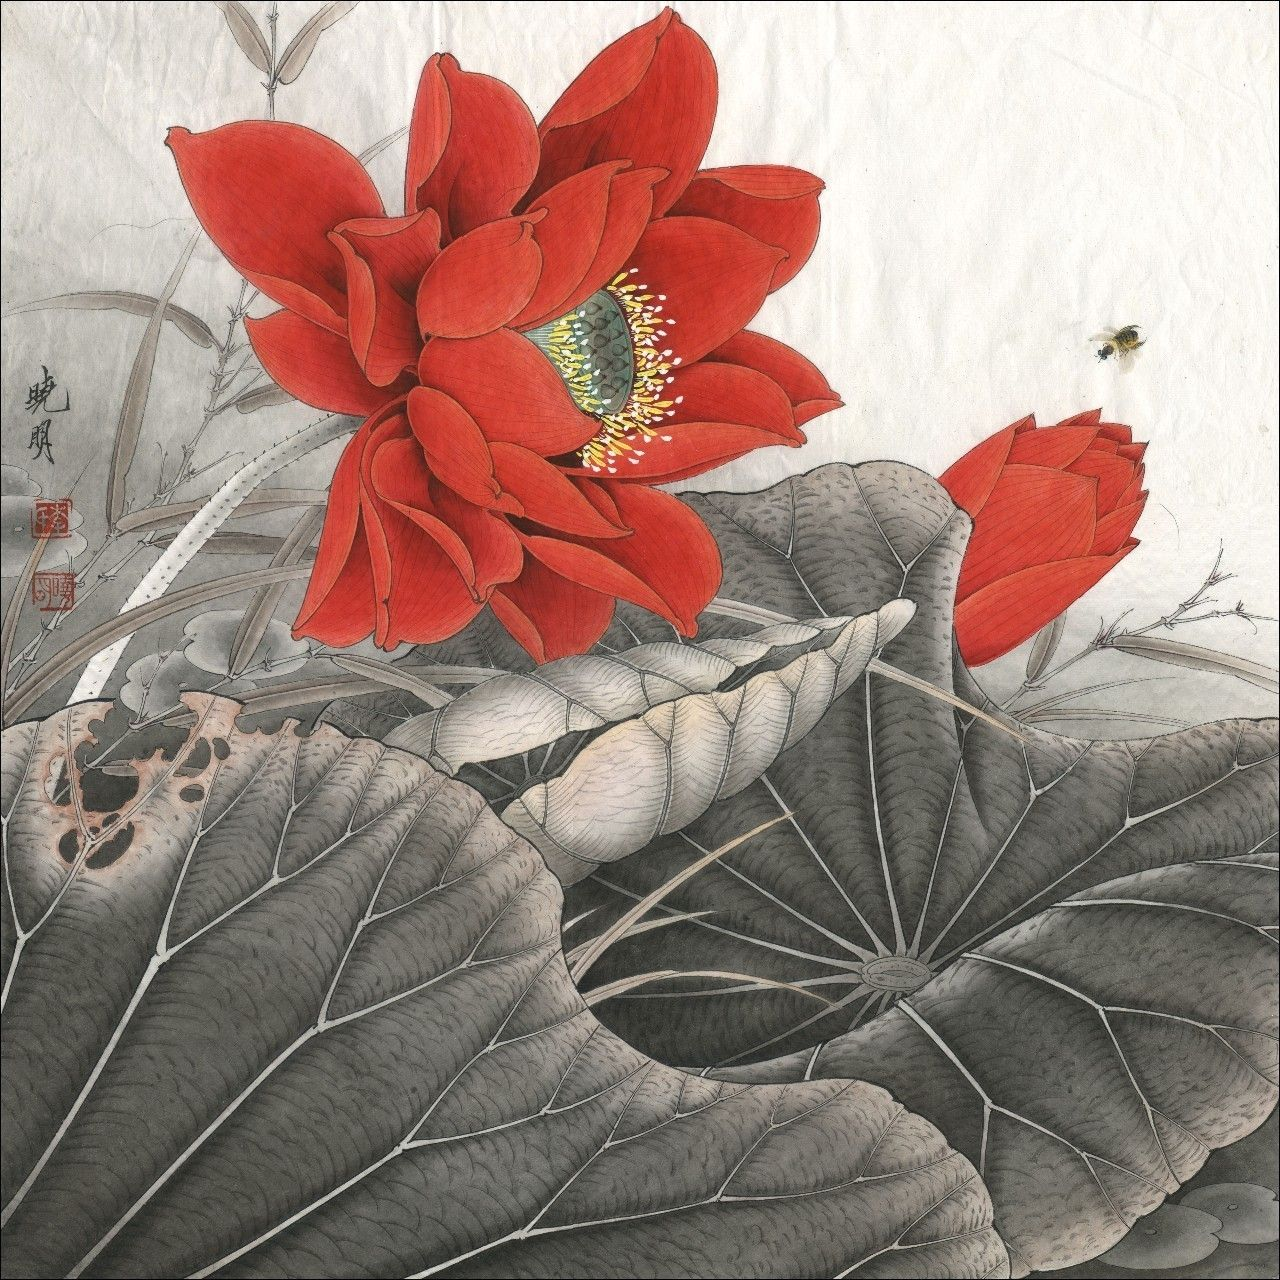 Red lotus flower and its meaning symbols and meanings pinterest red lotus flower and its meaning izmirmasajfo